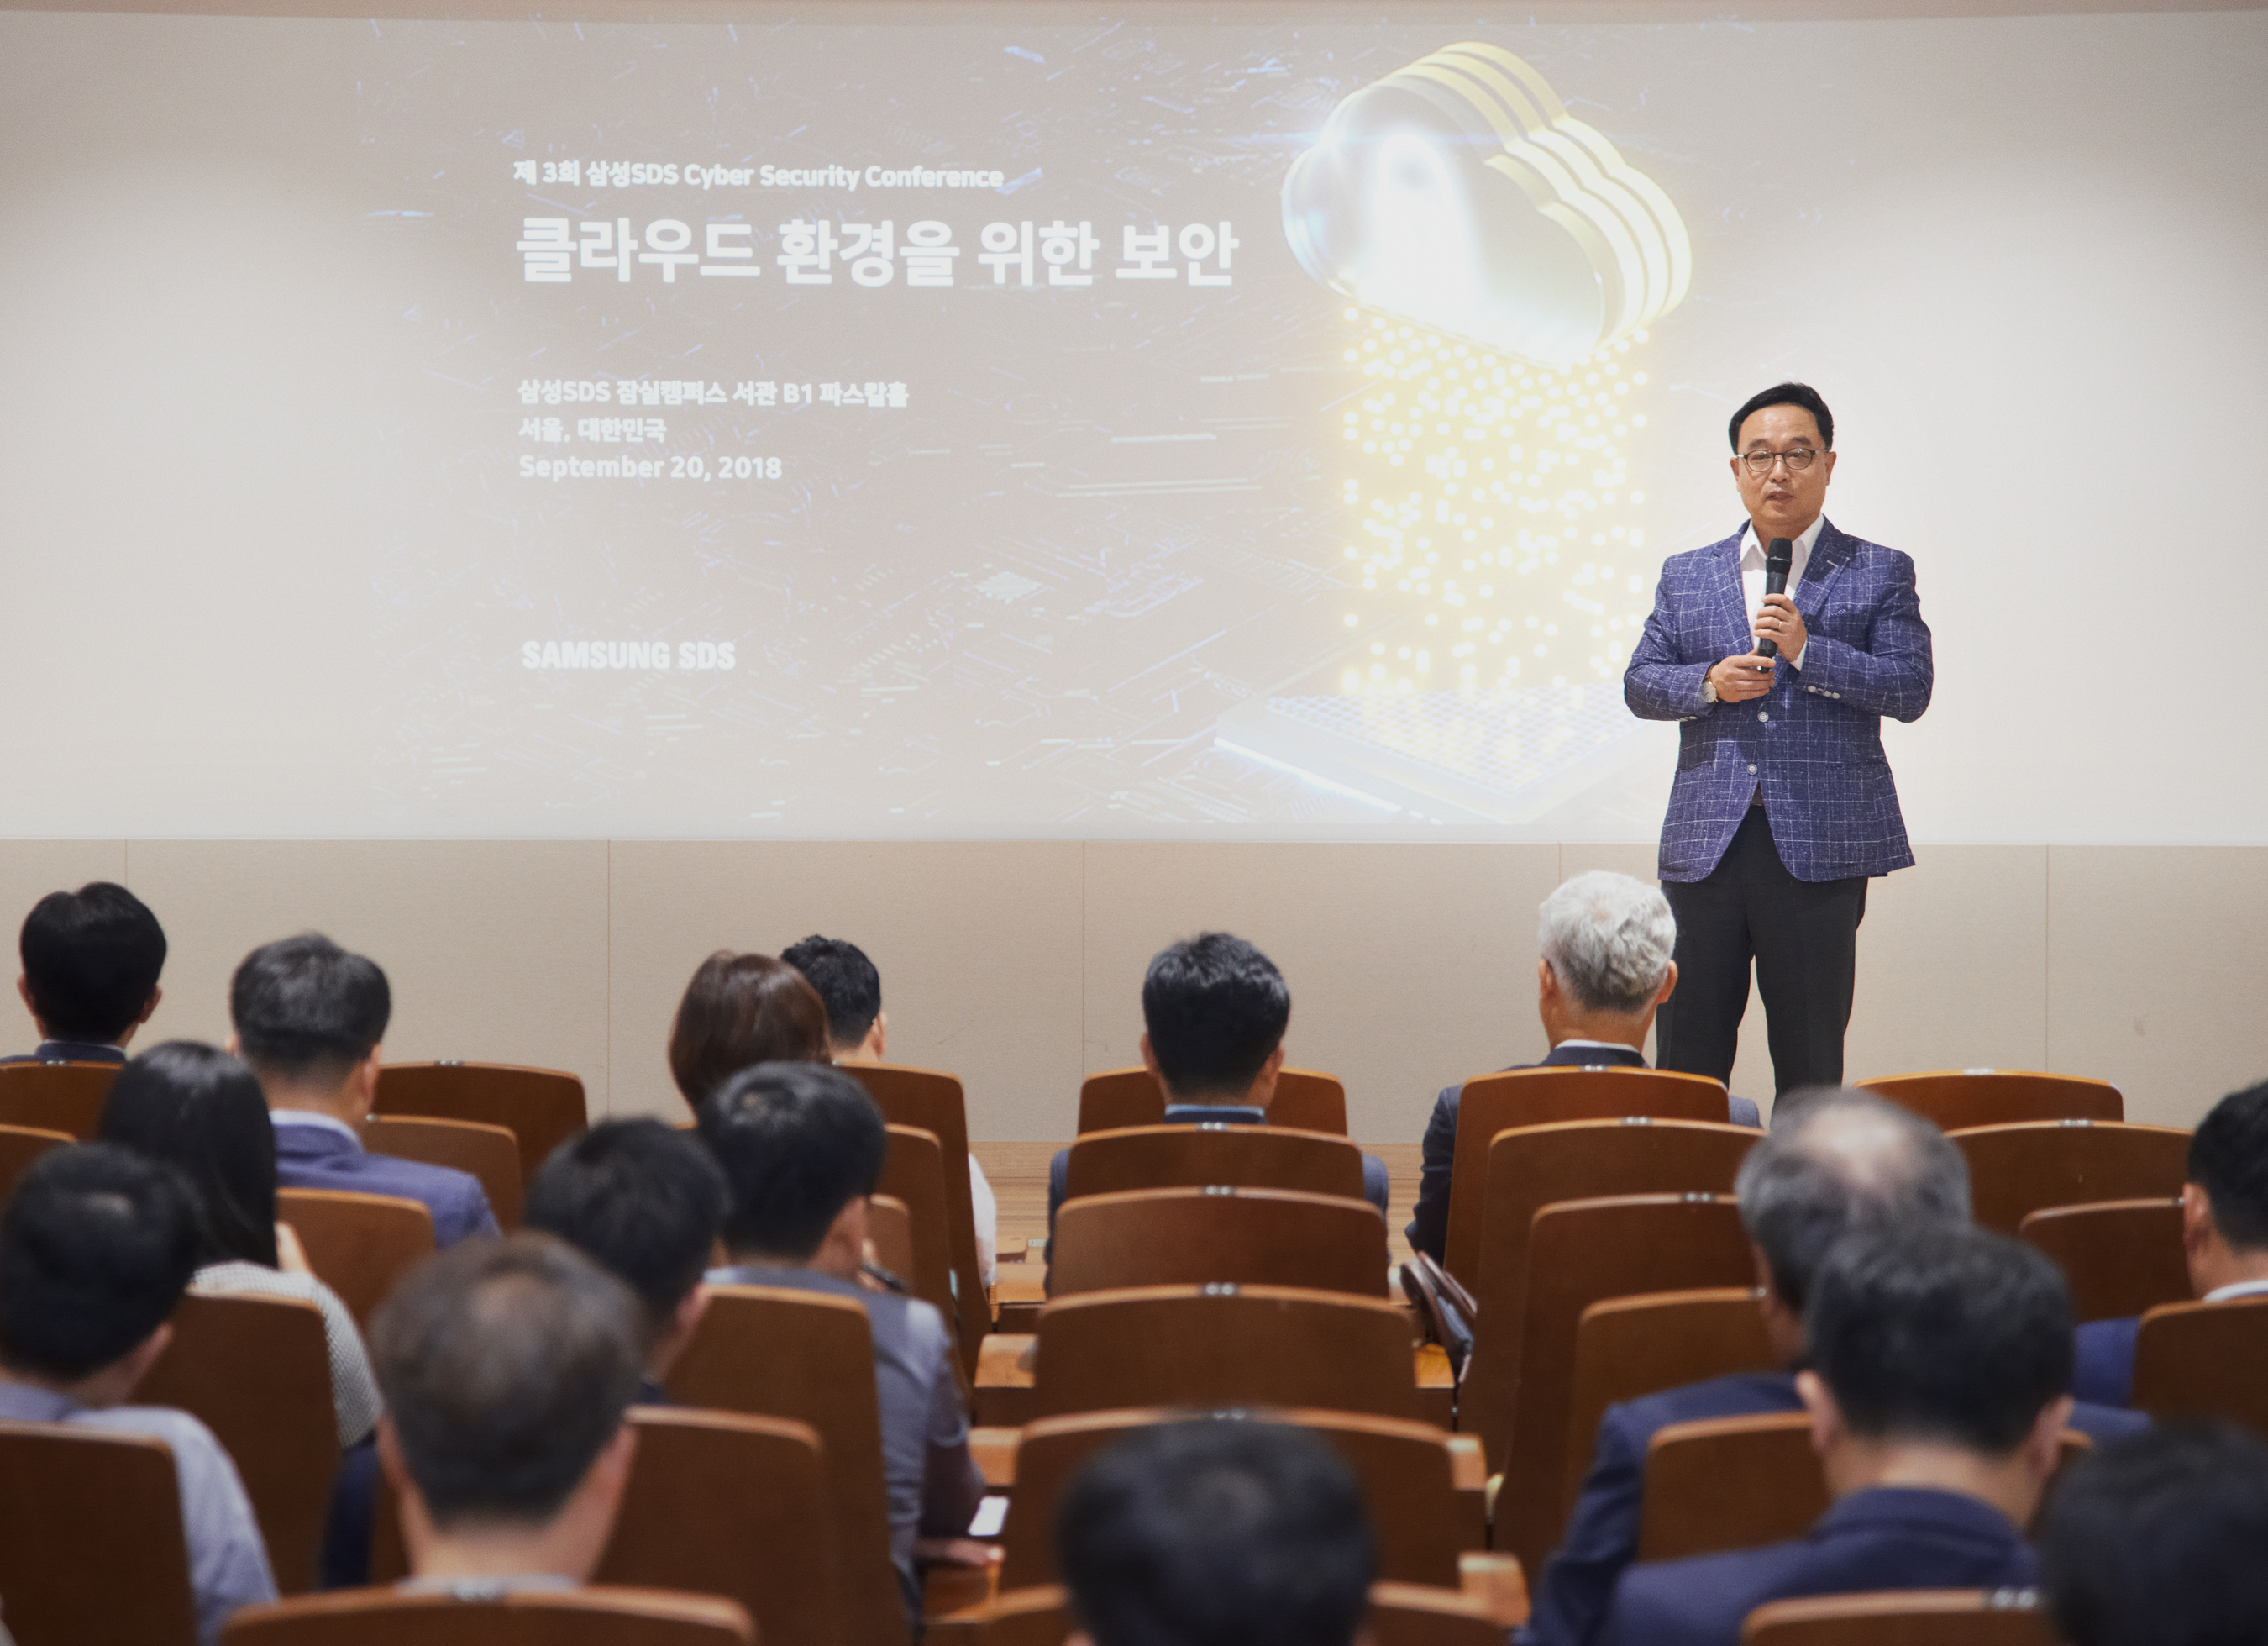 Ho Kim, Samsung SDS Cloud Business Division Leader (Executive Vice President) delivers welcoming remarks.